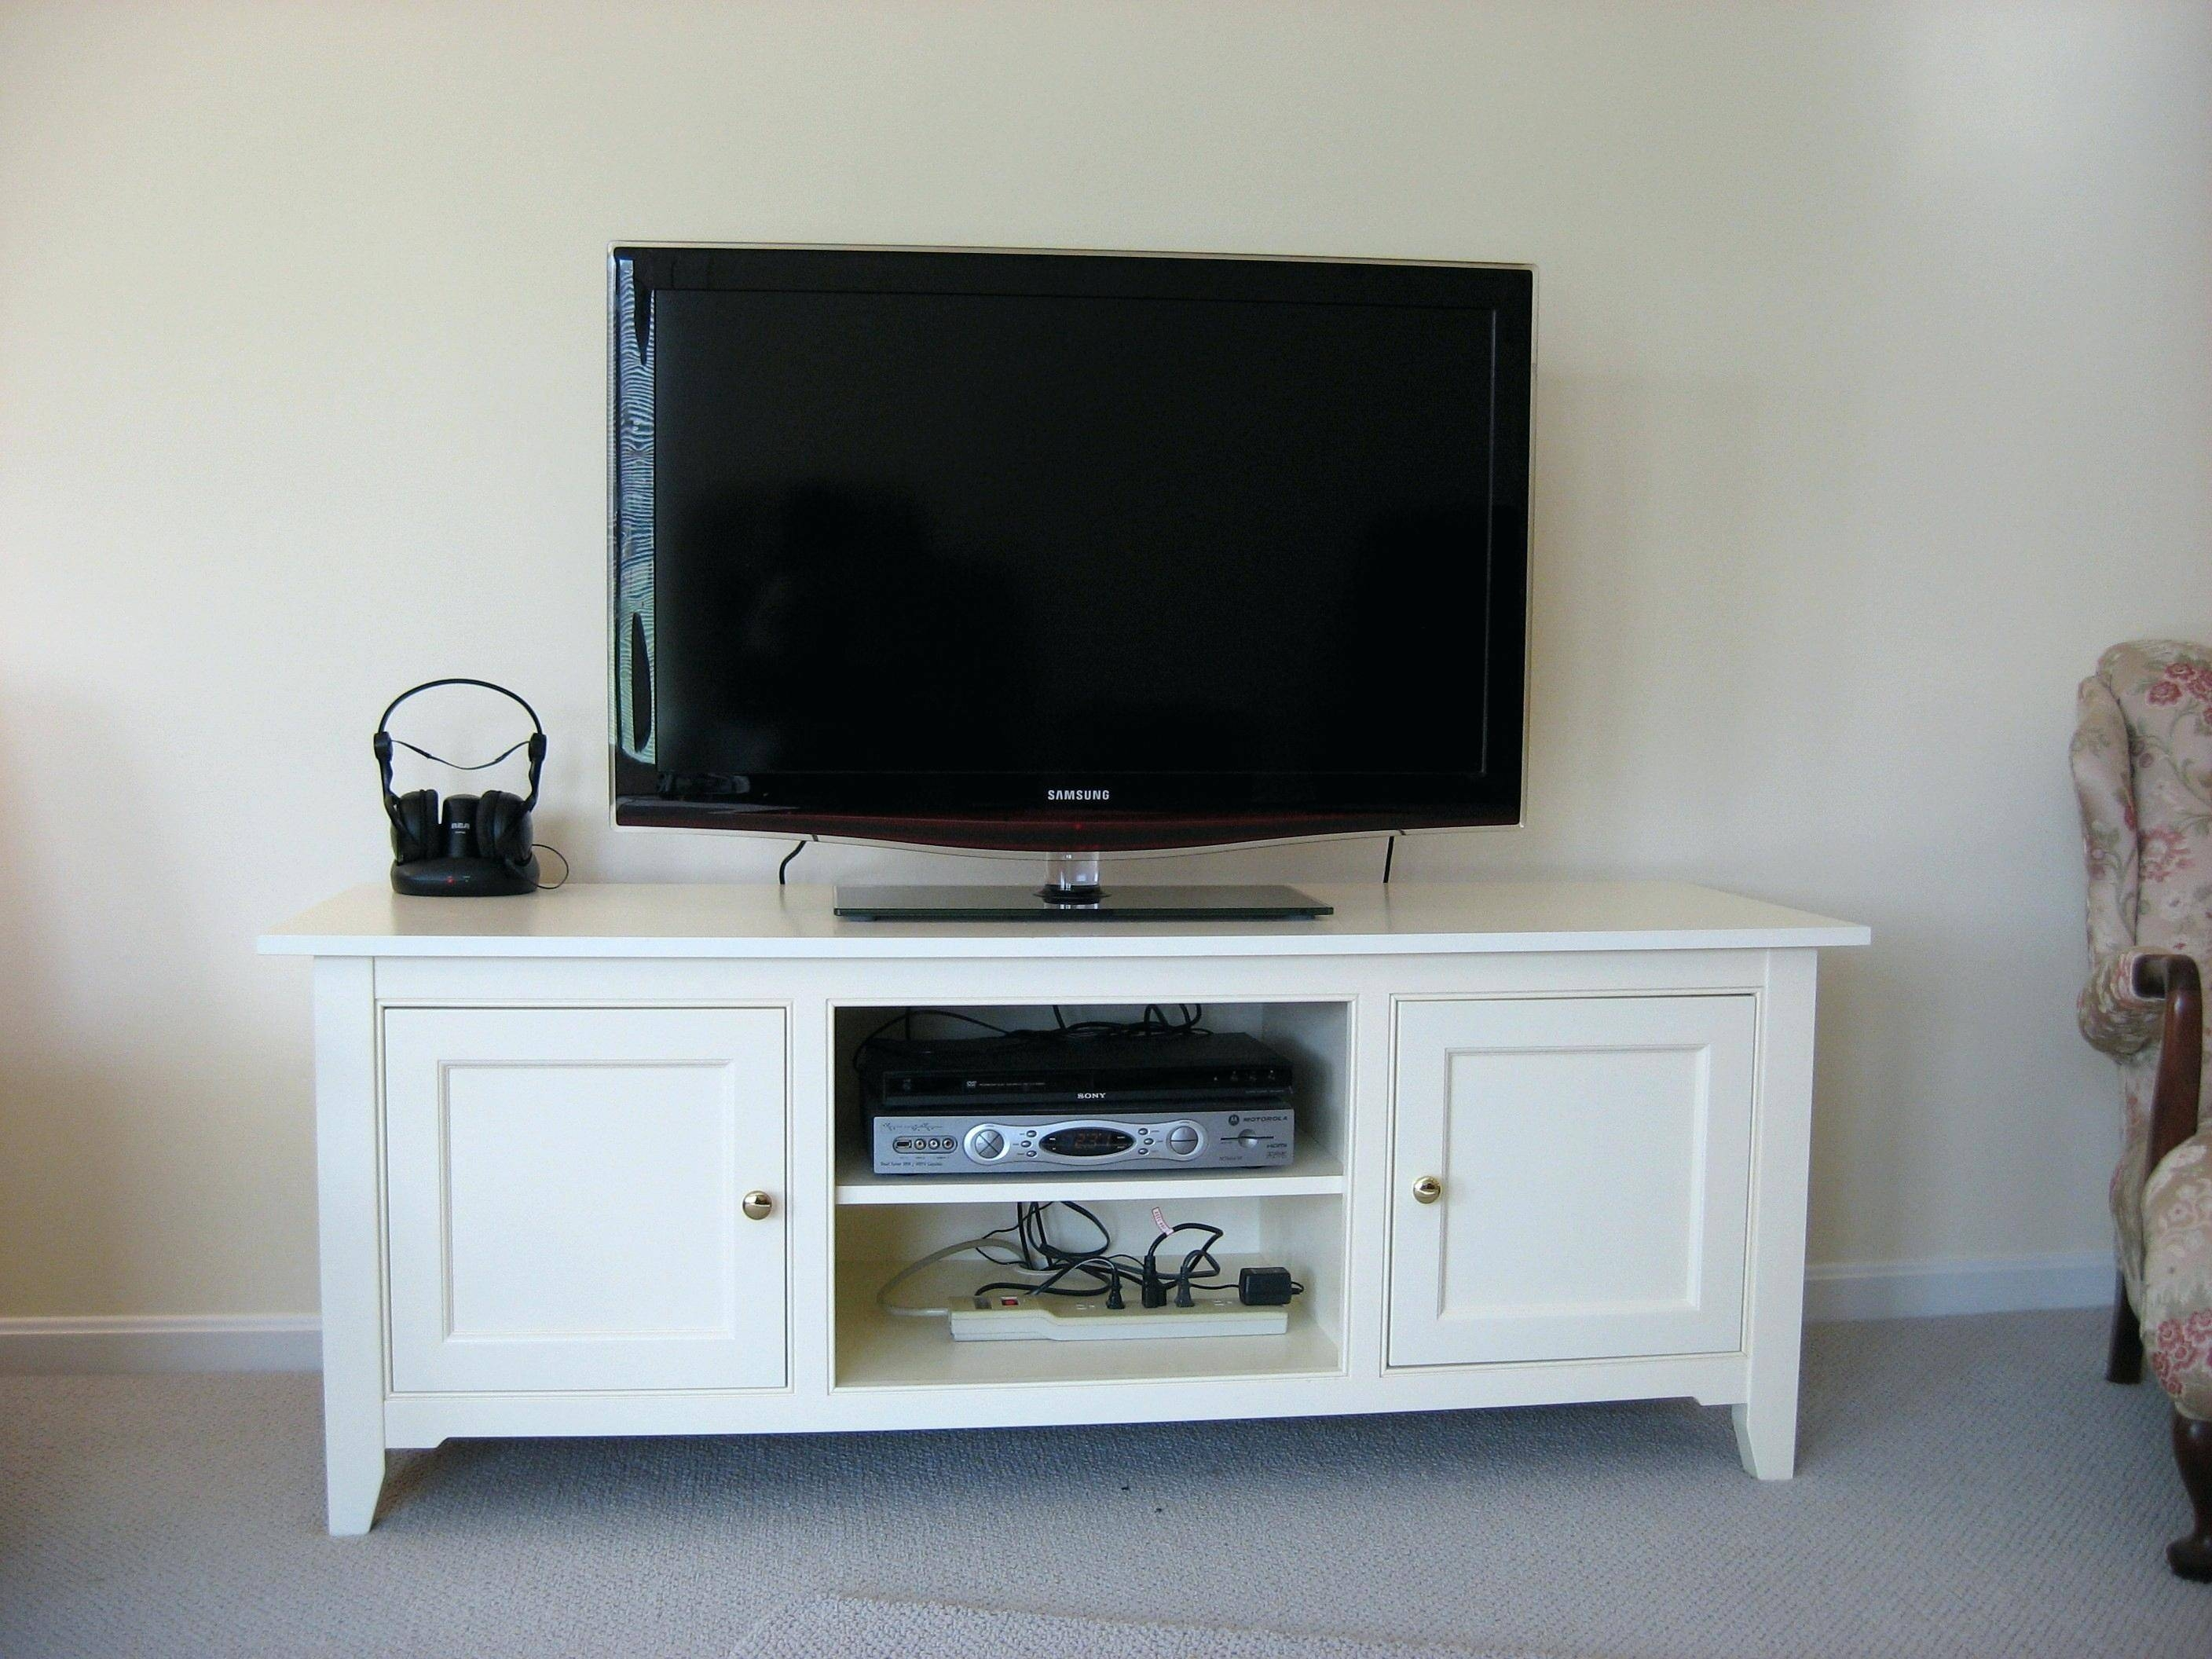 Tv Stand : Full Image For Sauder Orchard Hills Tv Stand Wood in White and Wood Tv Stands (Image 7 of 15)